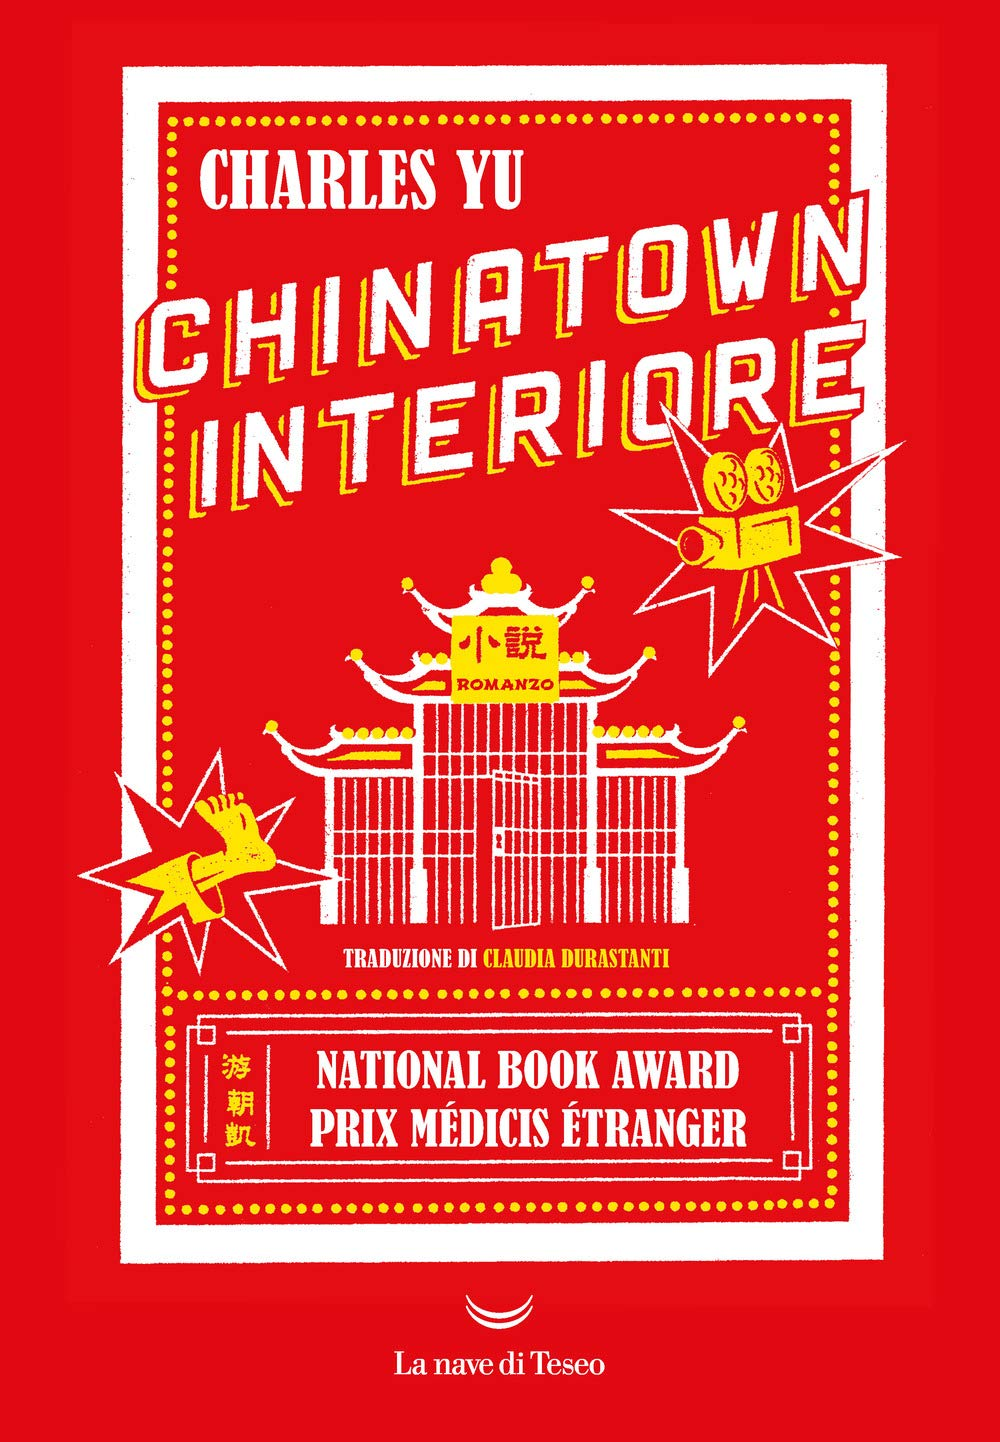 Chinatown Interiore - Charles Yu cover